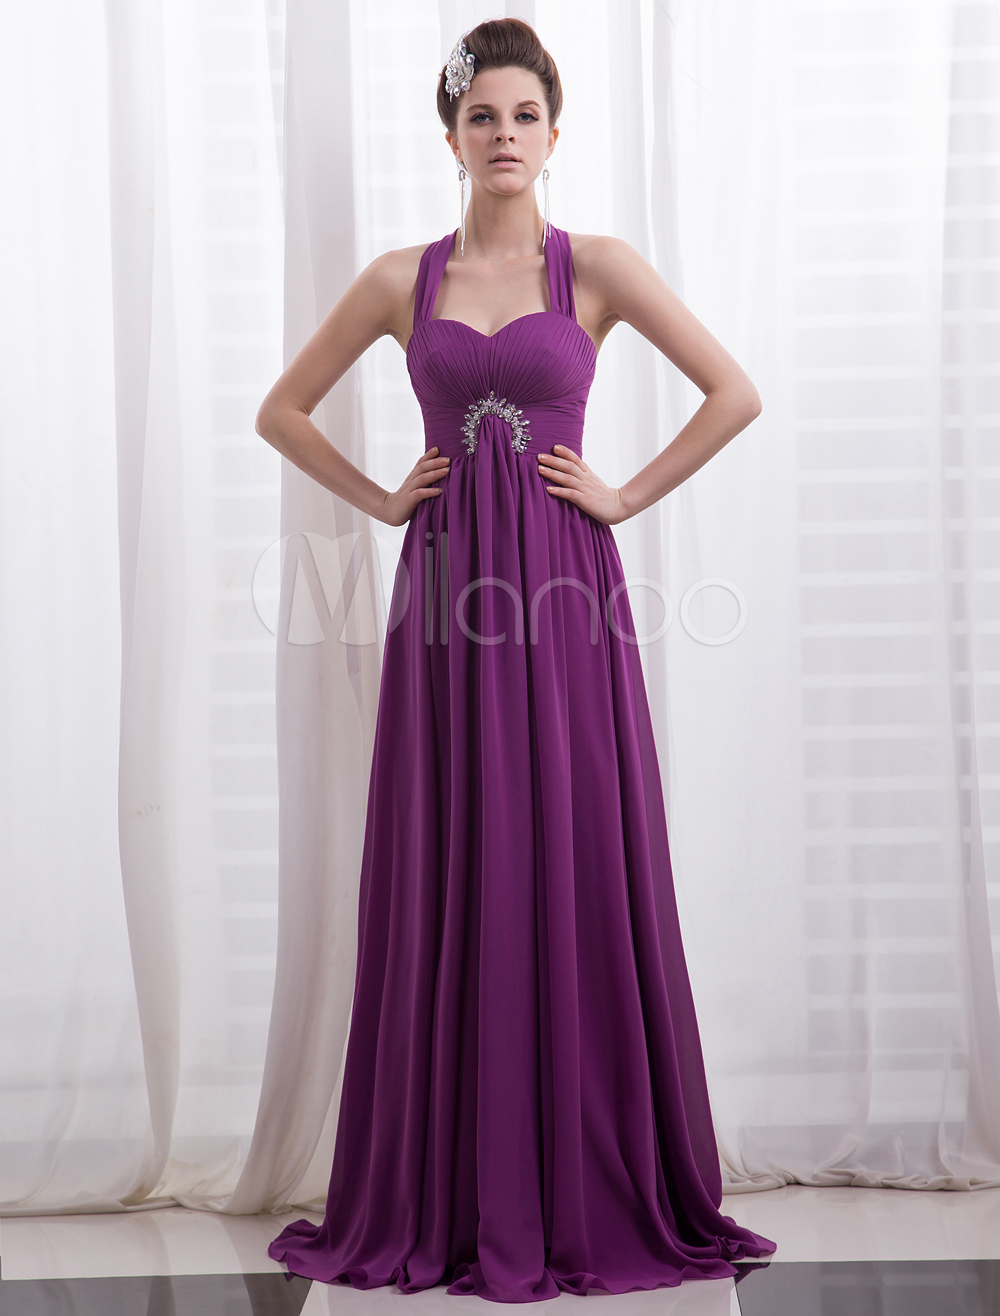 Chiffon Evening Dress Magenta Rhinestone Beaded Prom Dress  Halter A Line Floor Length Party Dress Milanoo